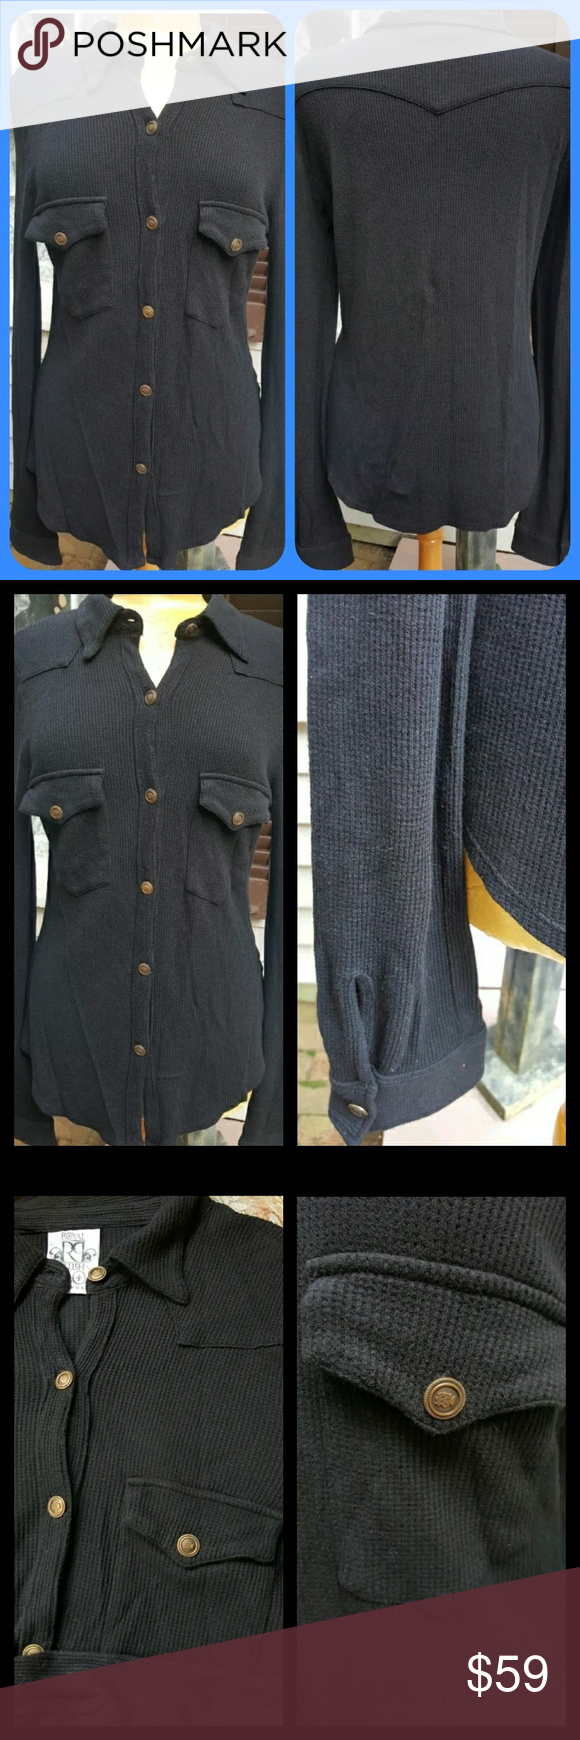 new Royal Plush THERMAL Waffle knit button up top brand new w/out tag  brand is ROYAL PLUSH  MSRP $126 made in USA YAYYY  u have ur pull over style waffle knit thermal tops...now u can have a button down! cool pocket seaming detail and ahhsome buttons . all.in thee details ! this line has its own sizing ..has little fleur di lis thingies..this is the 3rd one which is the brands equiv of sz medium. nevertheless all brands have their own sizing guides so measurements will be provided in comms…